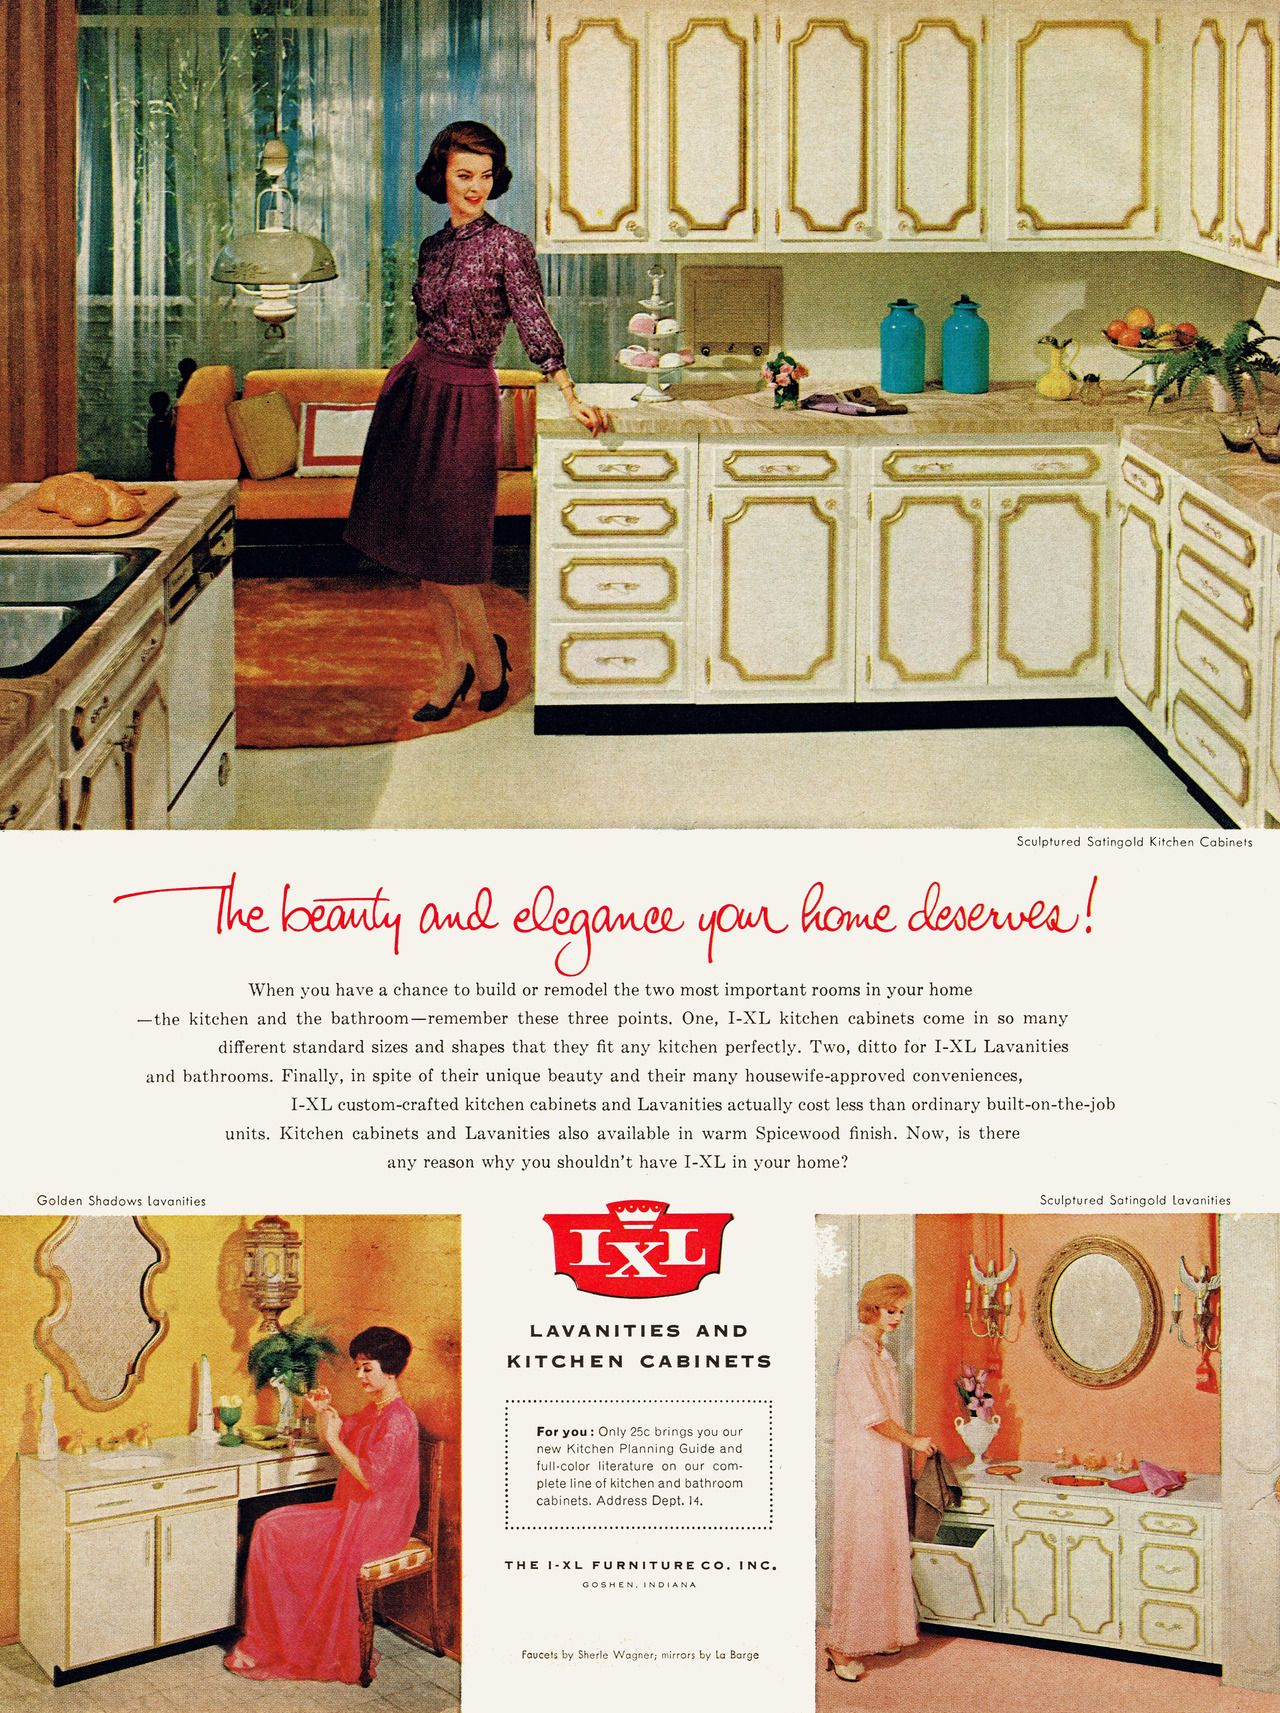 IXL Lavanities and Kitchen Cabinets 1963